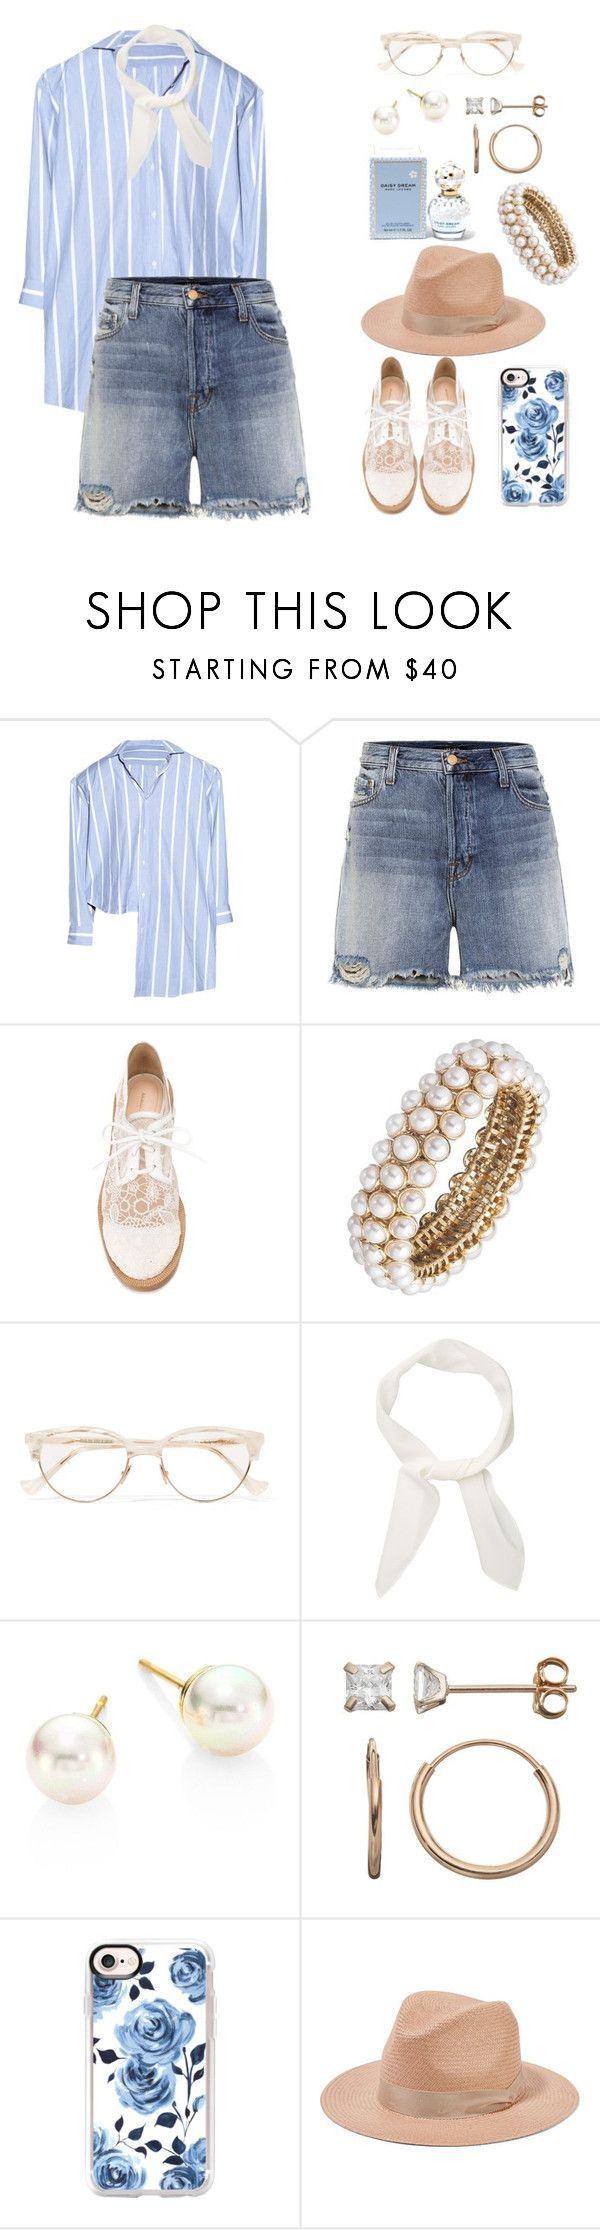 """""""Untitled #188"""" by nc-young ❤ liked on Polyvore featuring Vetements, J Brand, Nicholas Kirkwood, Anne Klein, Cutler and Gross, Chloé, Majorica, Taylor Grace, Casetify and rag & bone"""